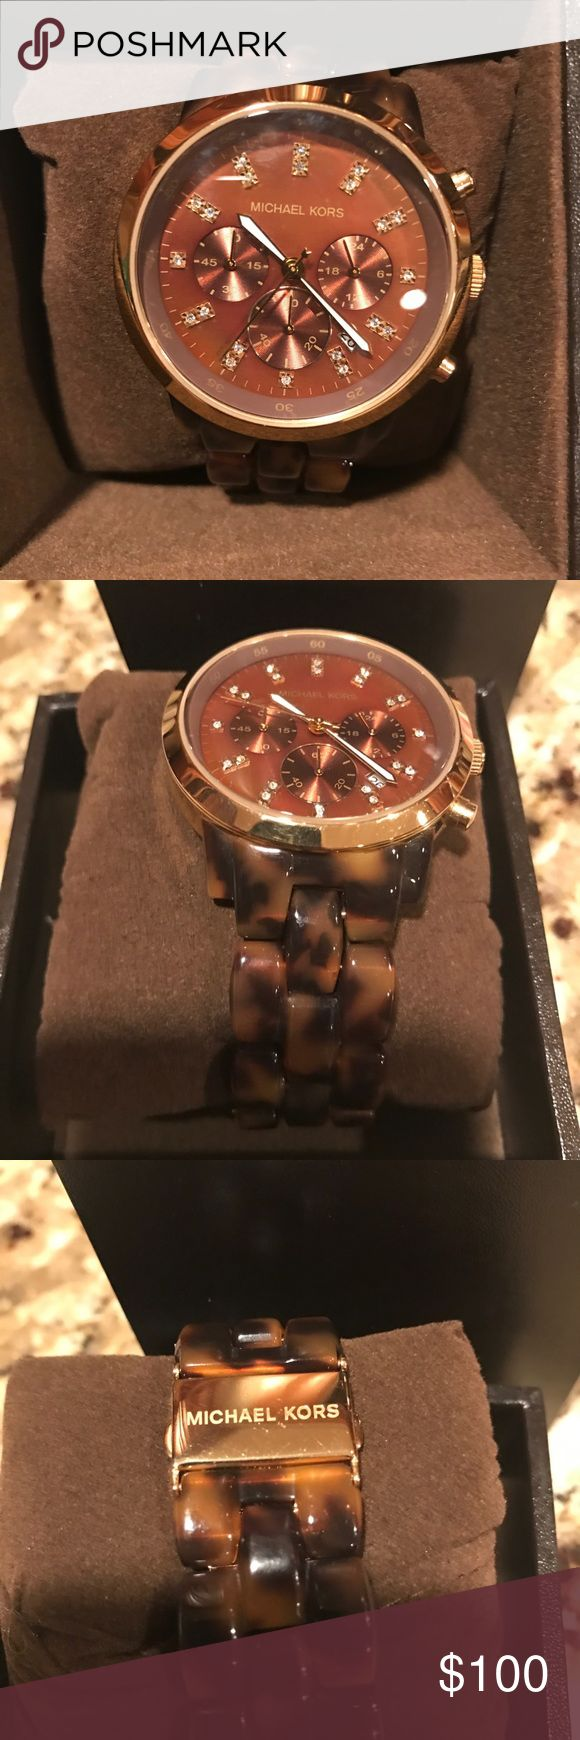 Michael Kors tortoise watch Like new. Extra links included. In box Michael Kors Accessories Watches